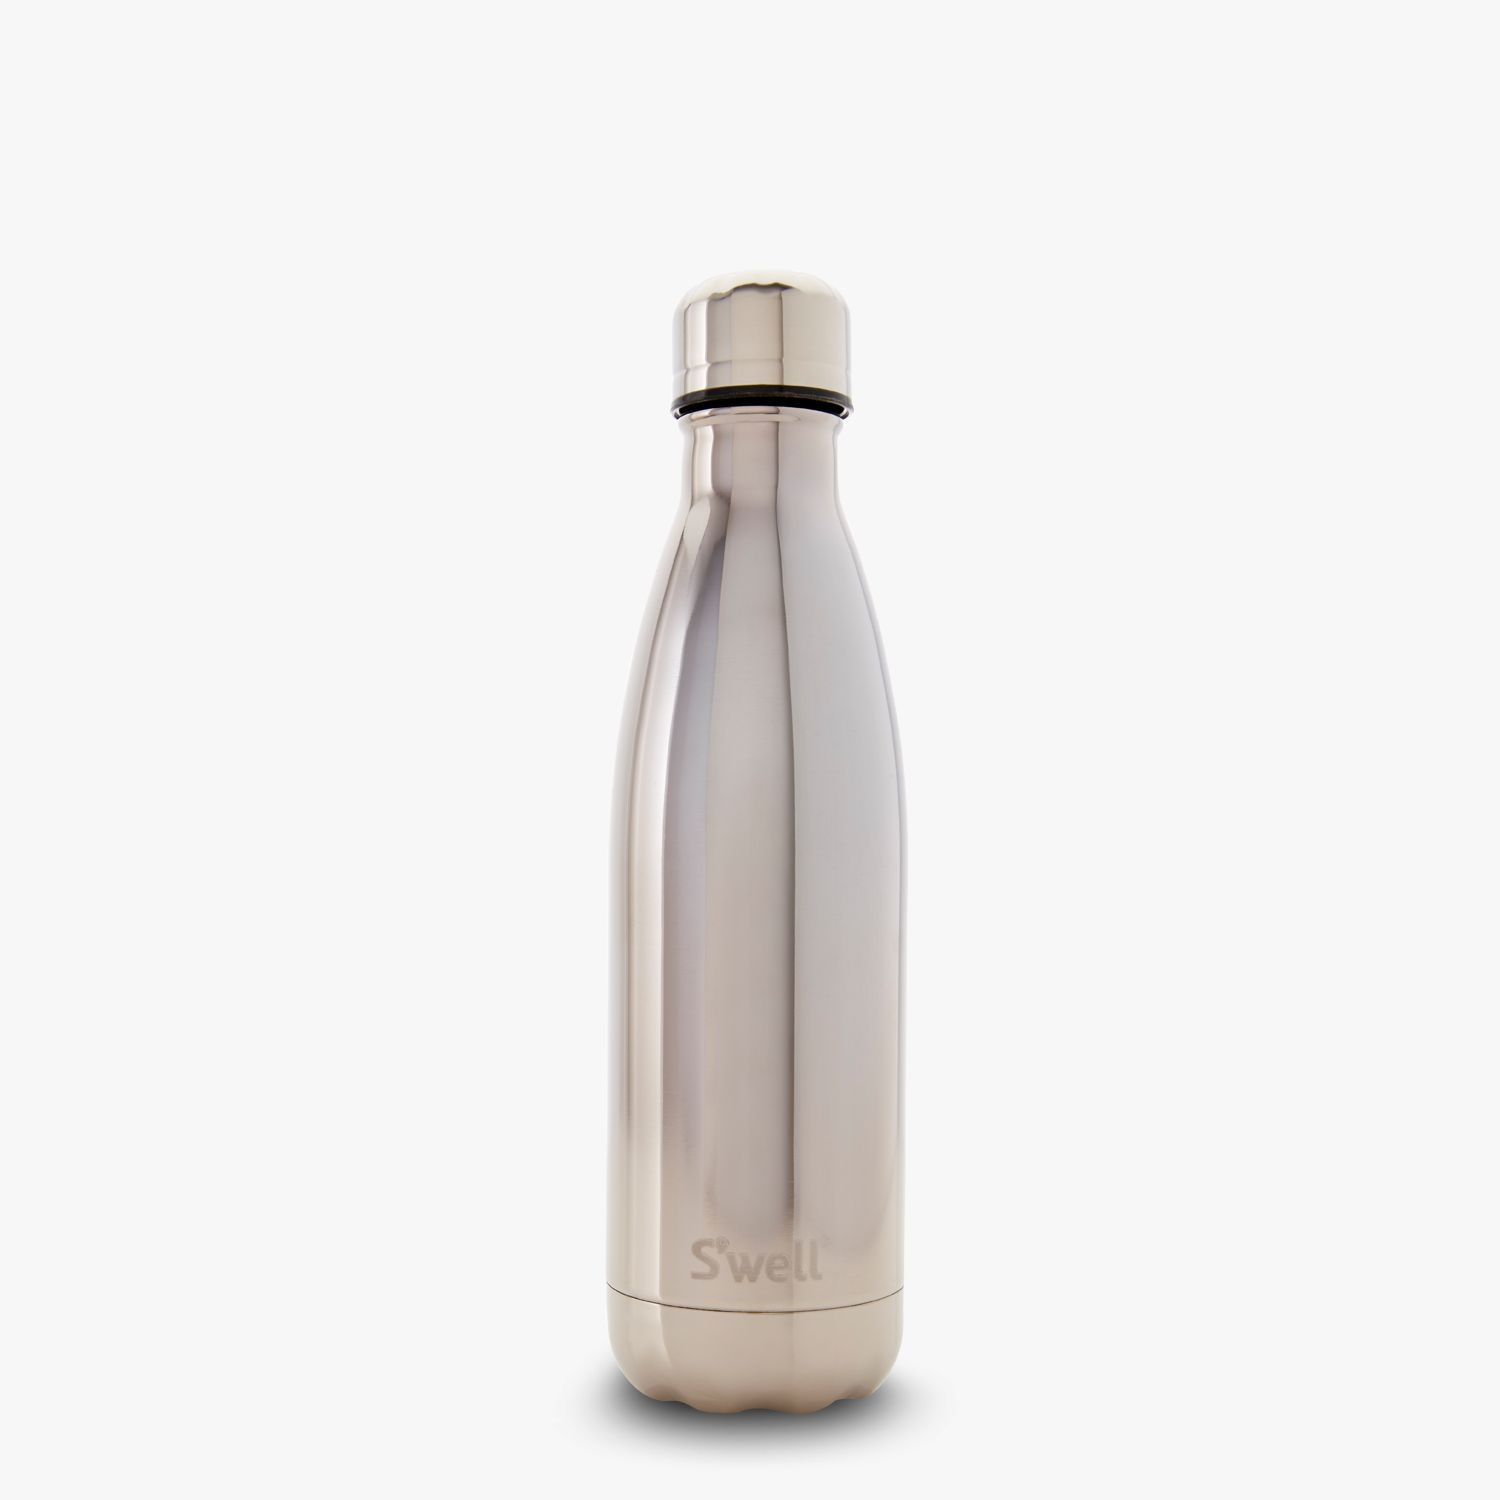 Su0027well stainless steel water bottle with a